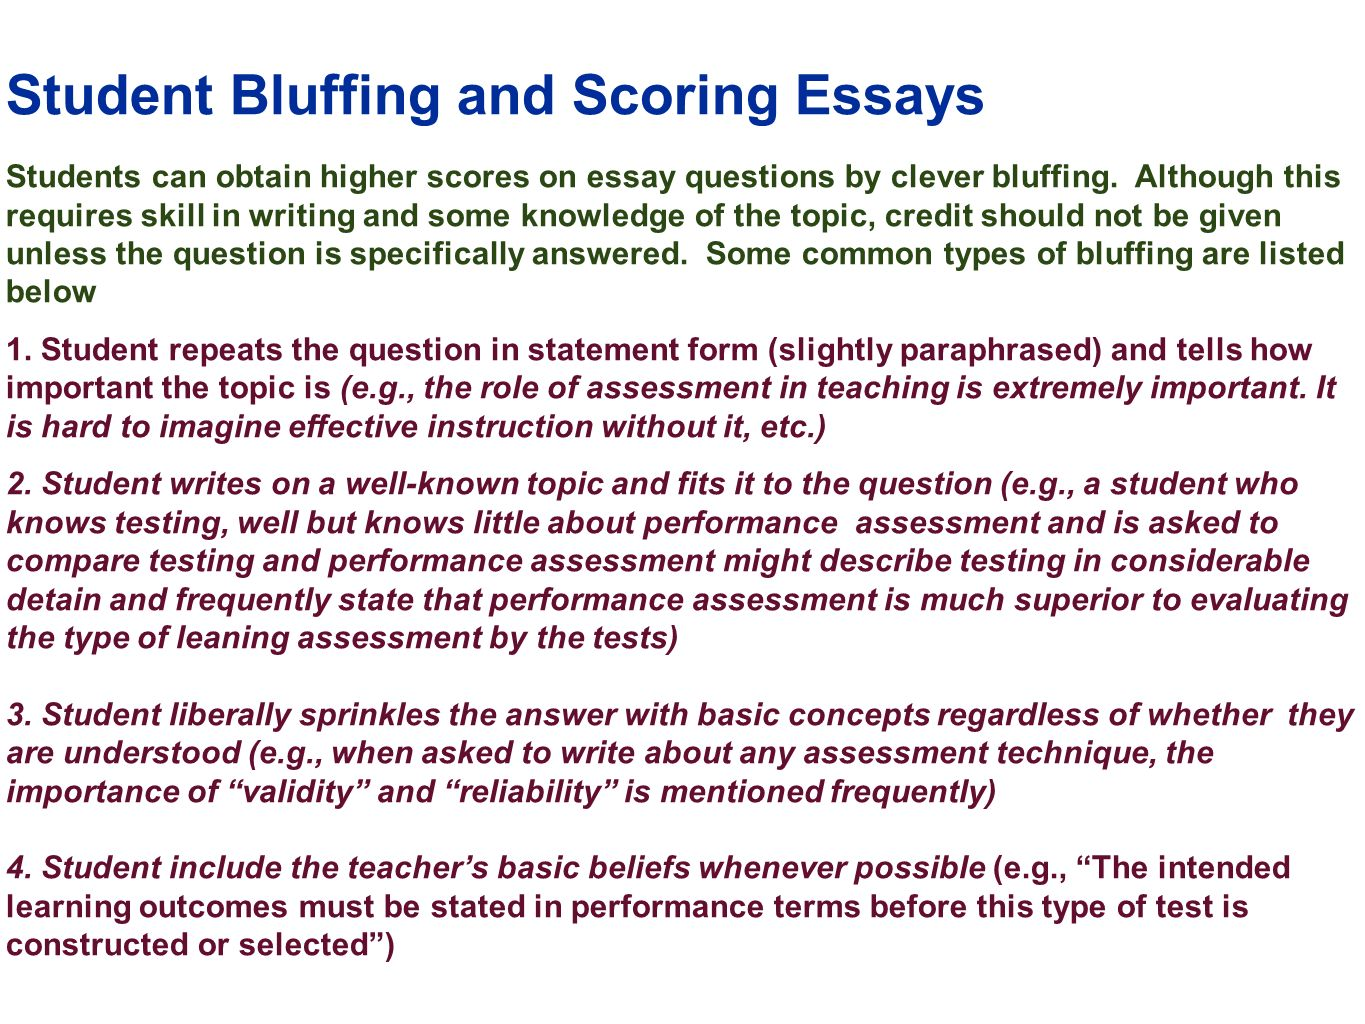 edu 385 session 10 writing supply items short answer and essay student bluffing and scoring essays students can obtain higher scores on essay questions by clever bluffing